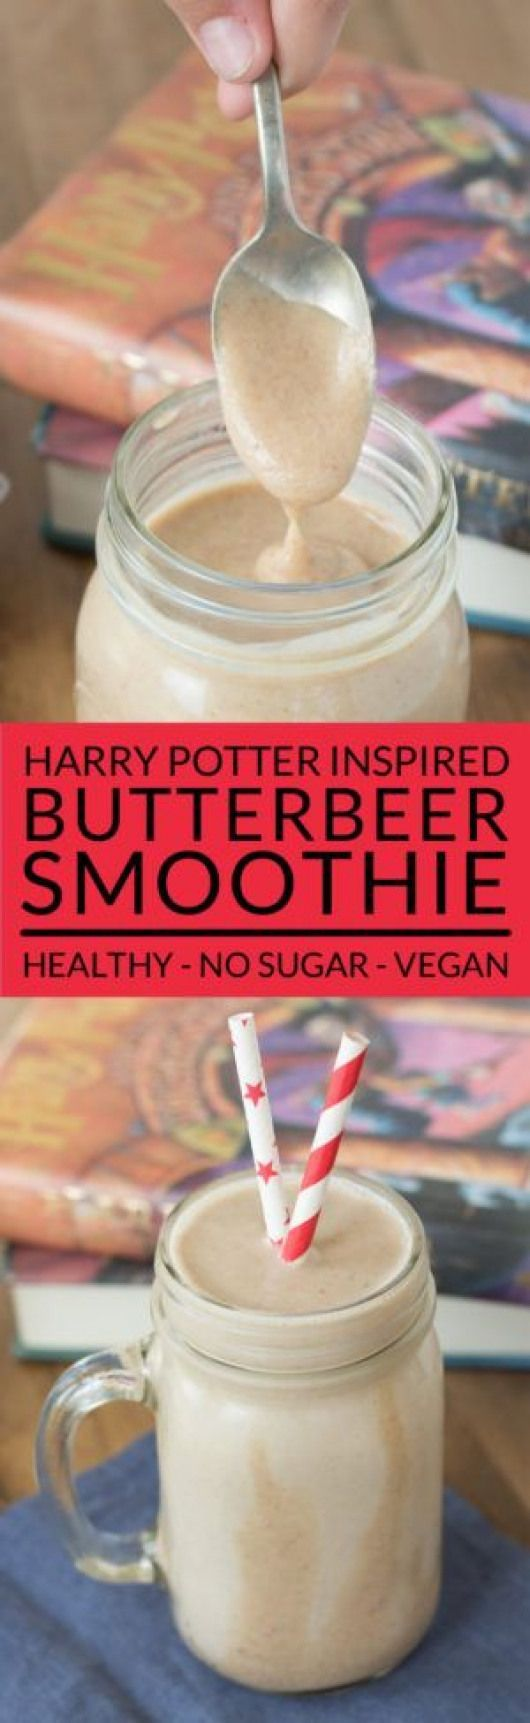 Make a homemade Harry Potter Butterbeer Smoothie and feel the magic! This easy smoothie recipe tastes like the Butterbeer sold at Hogsmeade in the Wizarding World of Harry Potter but it contains no sugar and its vegan. Perfect for healthy kids! Only six ingredients! Healthy Smoothies to Try. #healthydrinks #healthy #drinks #for #kids #butterbierrezept Make a homemade Harry Potter Butterbeer Smoothie and feel the magic! This easy smoothie recipe tastes like the Butterbeer sold at Hogsmeade in the #butterbierrezept